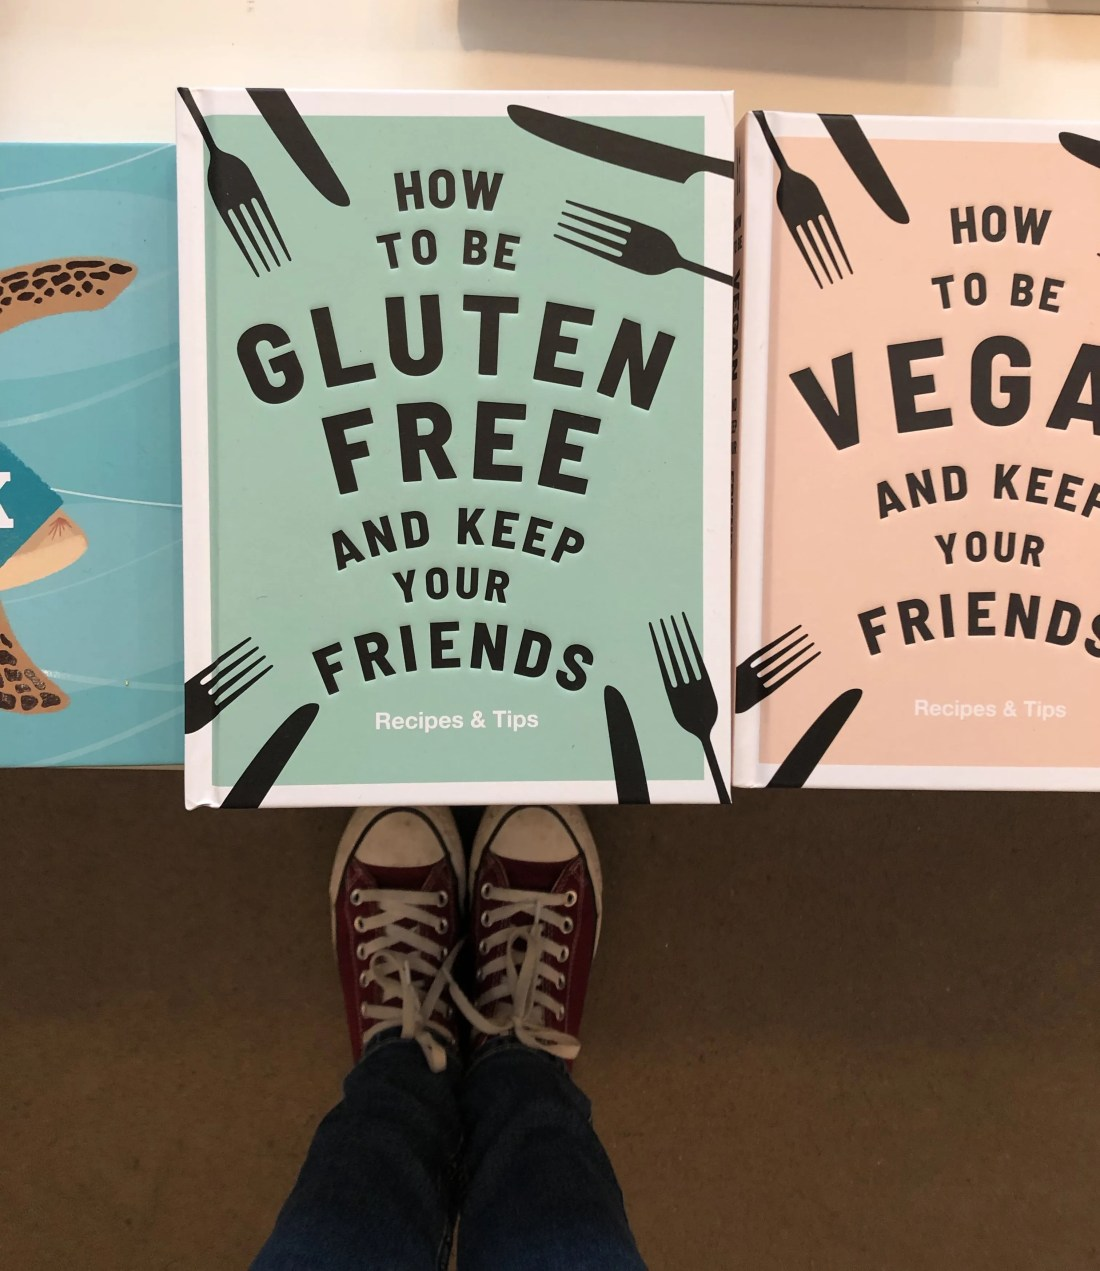 Gluten Free Book covers on display